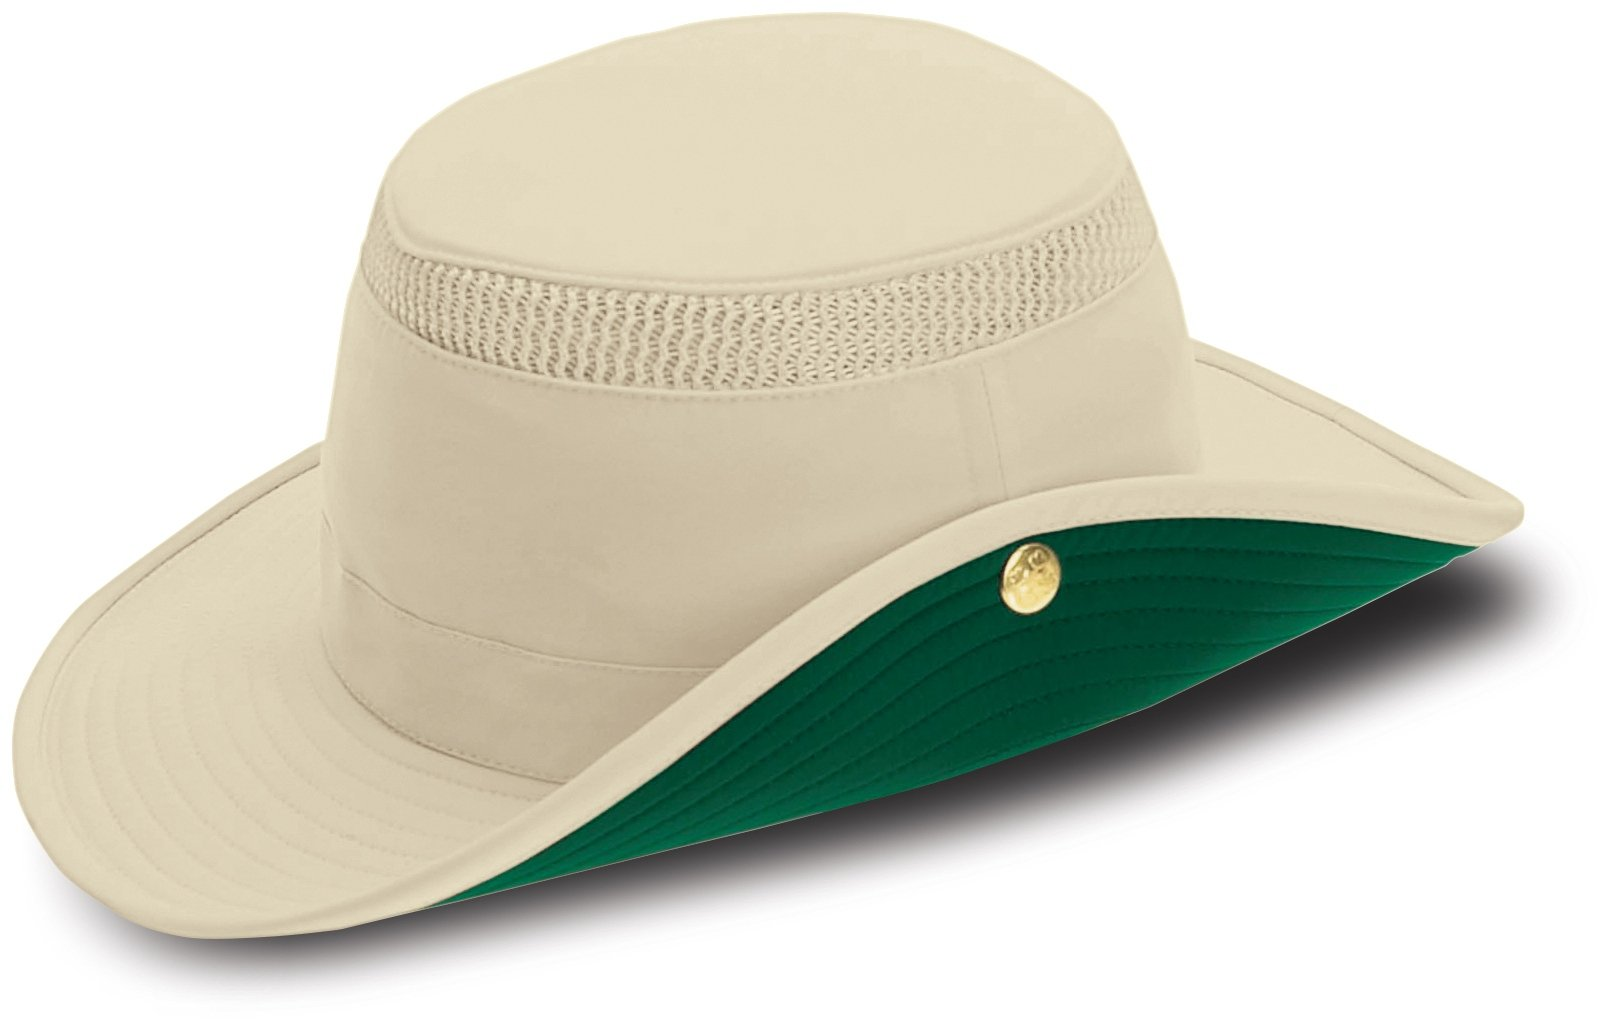 ab49115e Tilley LTM3 Airflo Hat - Natural/Green Size 7 3/8